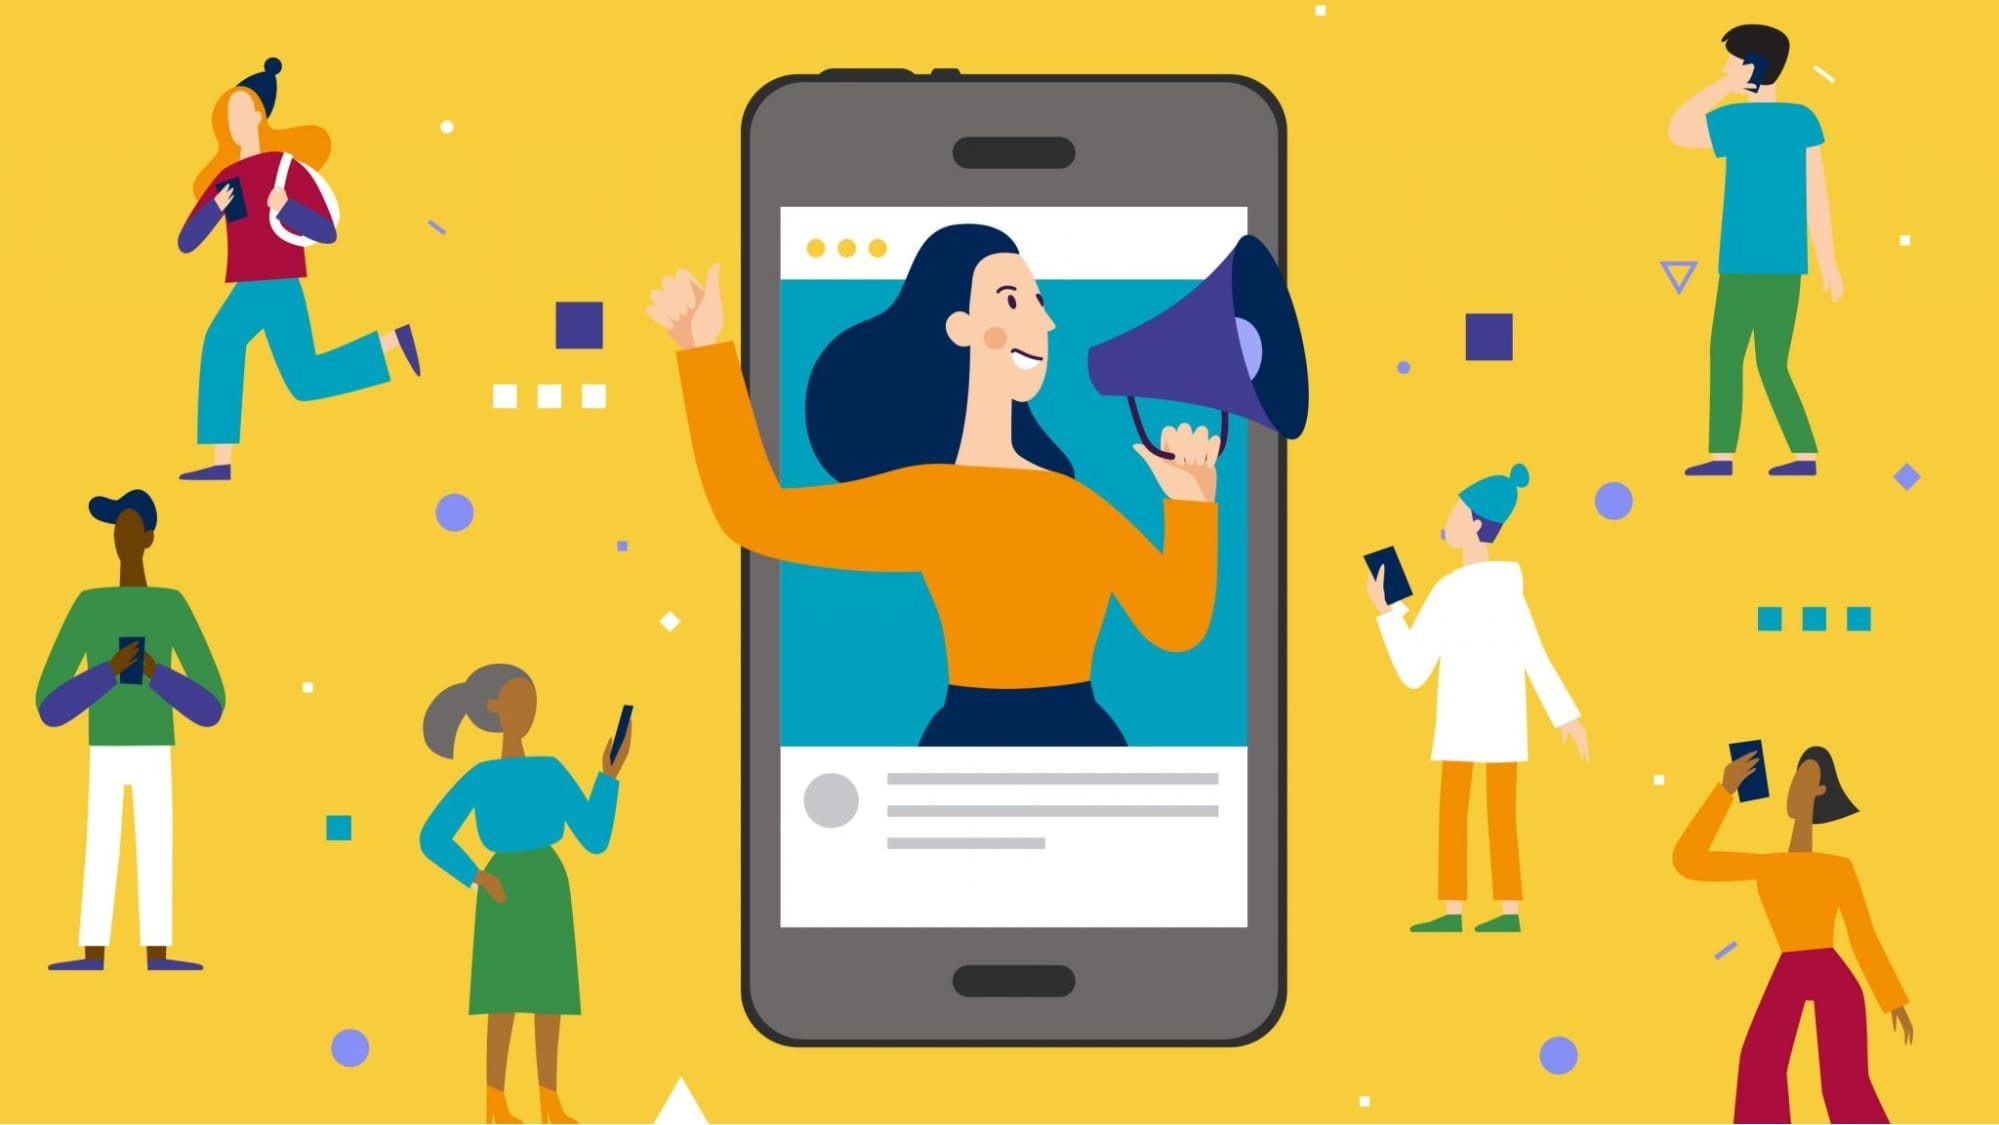 Encourage user-generated content